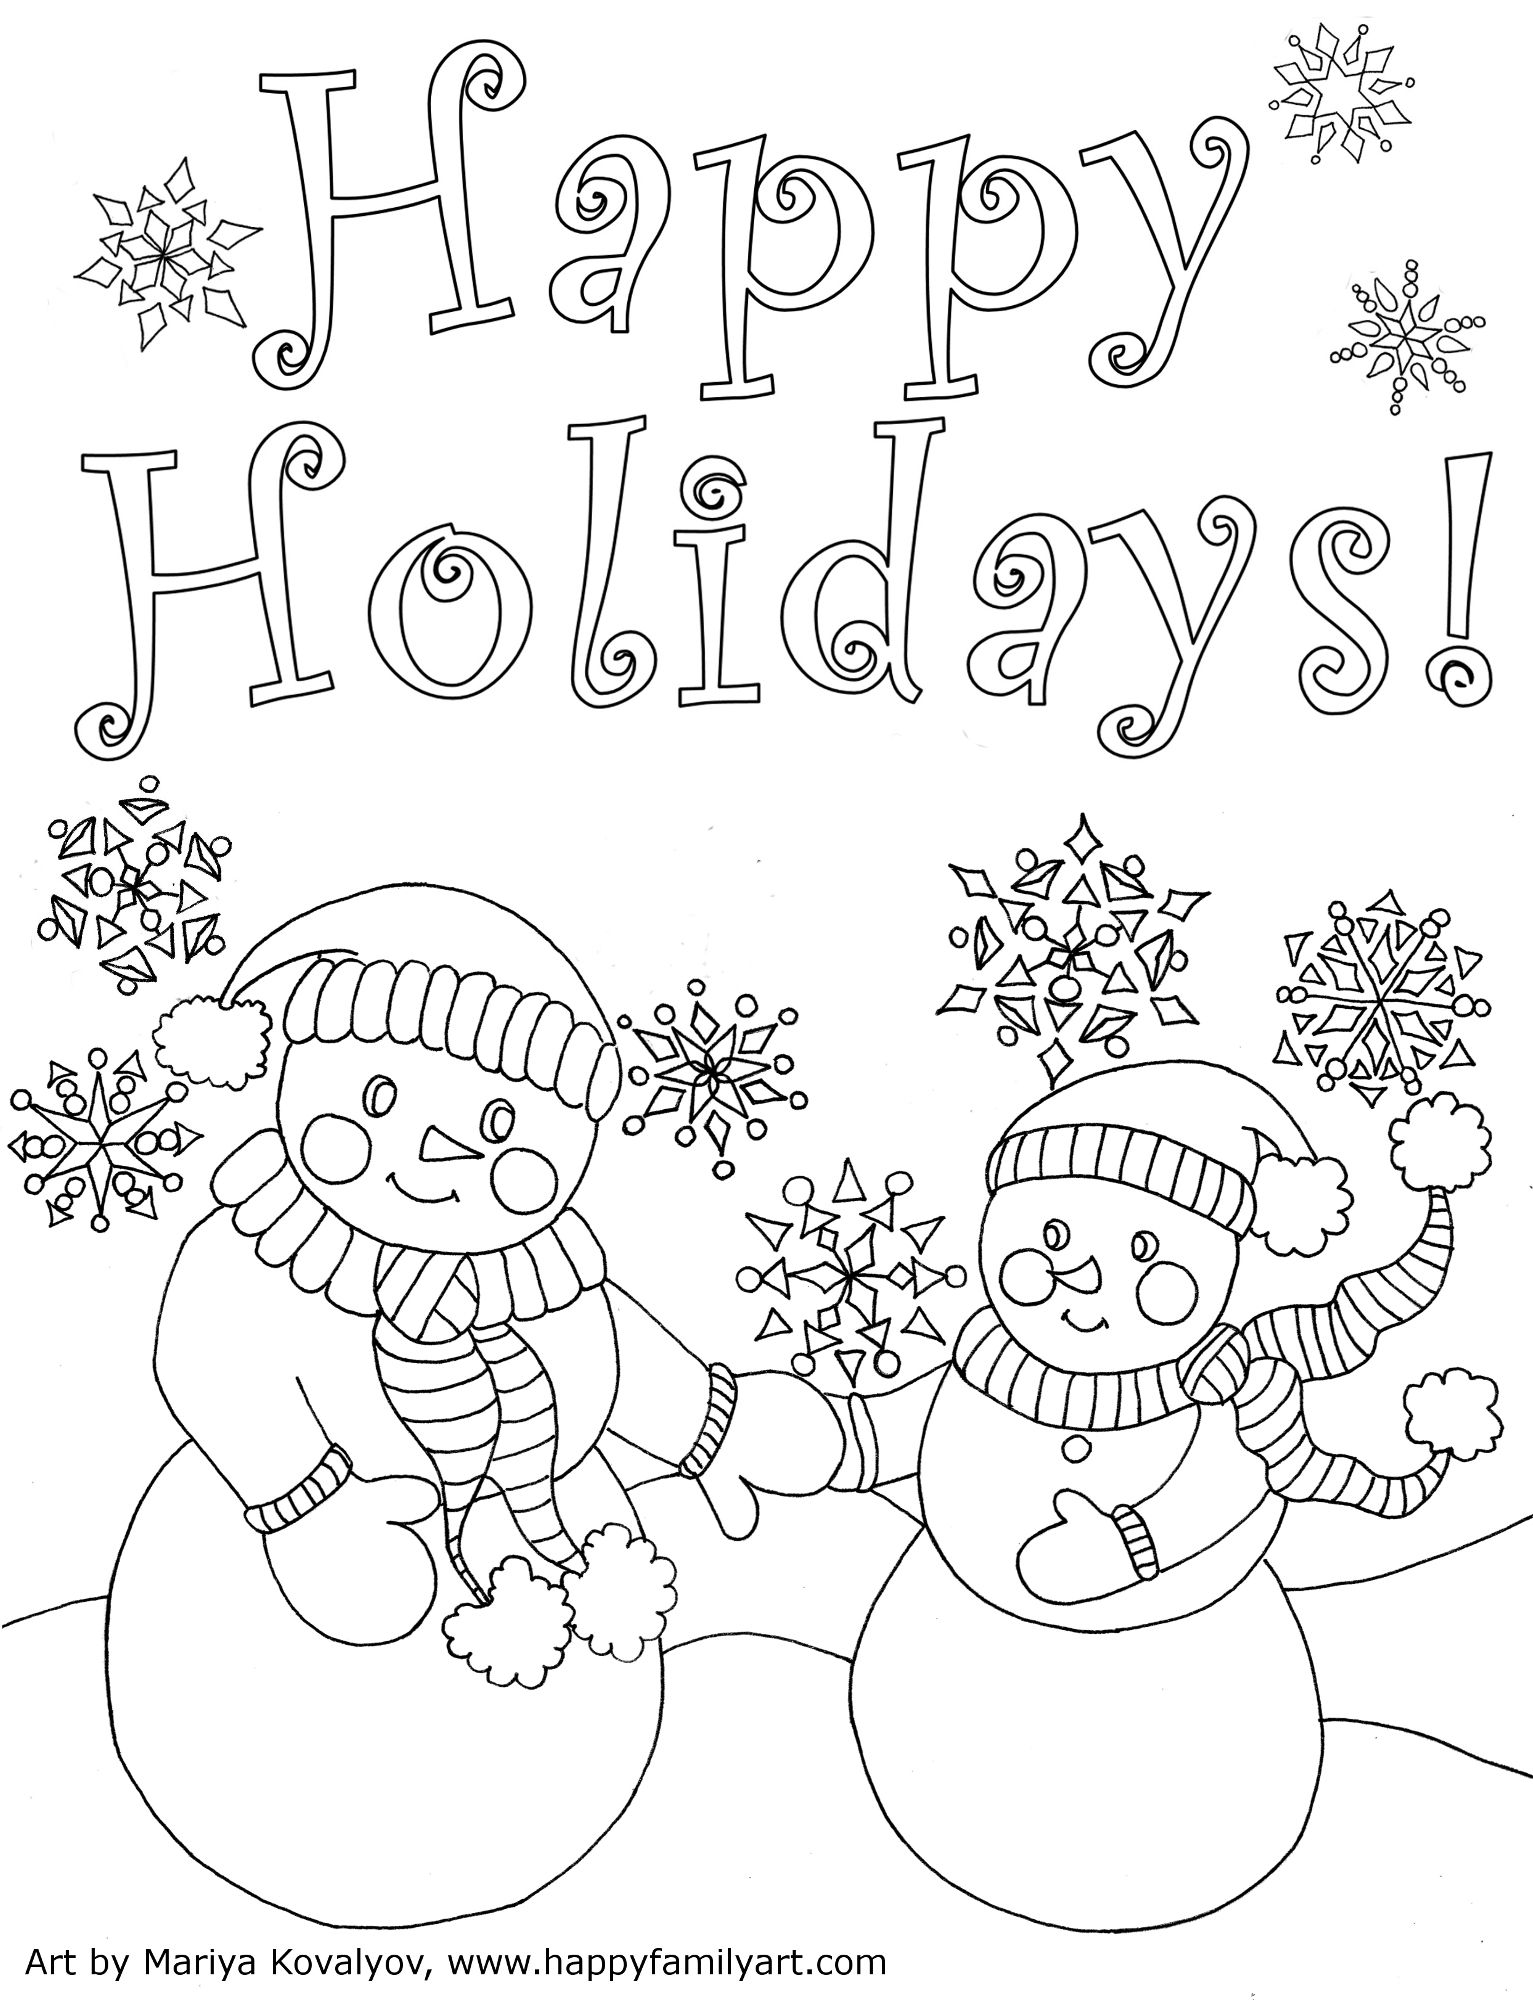 Religious Christmas Card Coloring Pages With Original And Fun Collections Pinterest